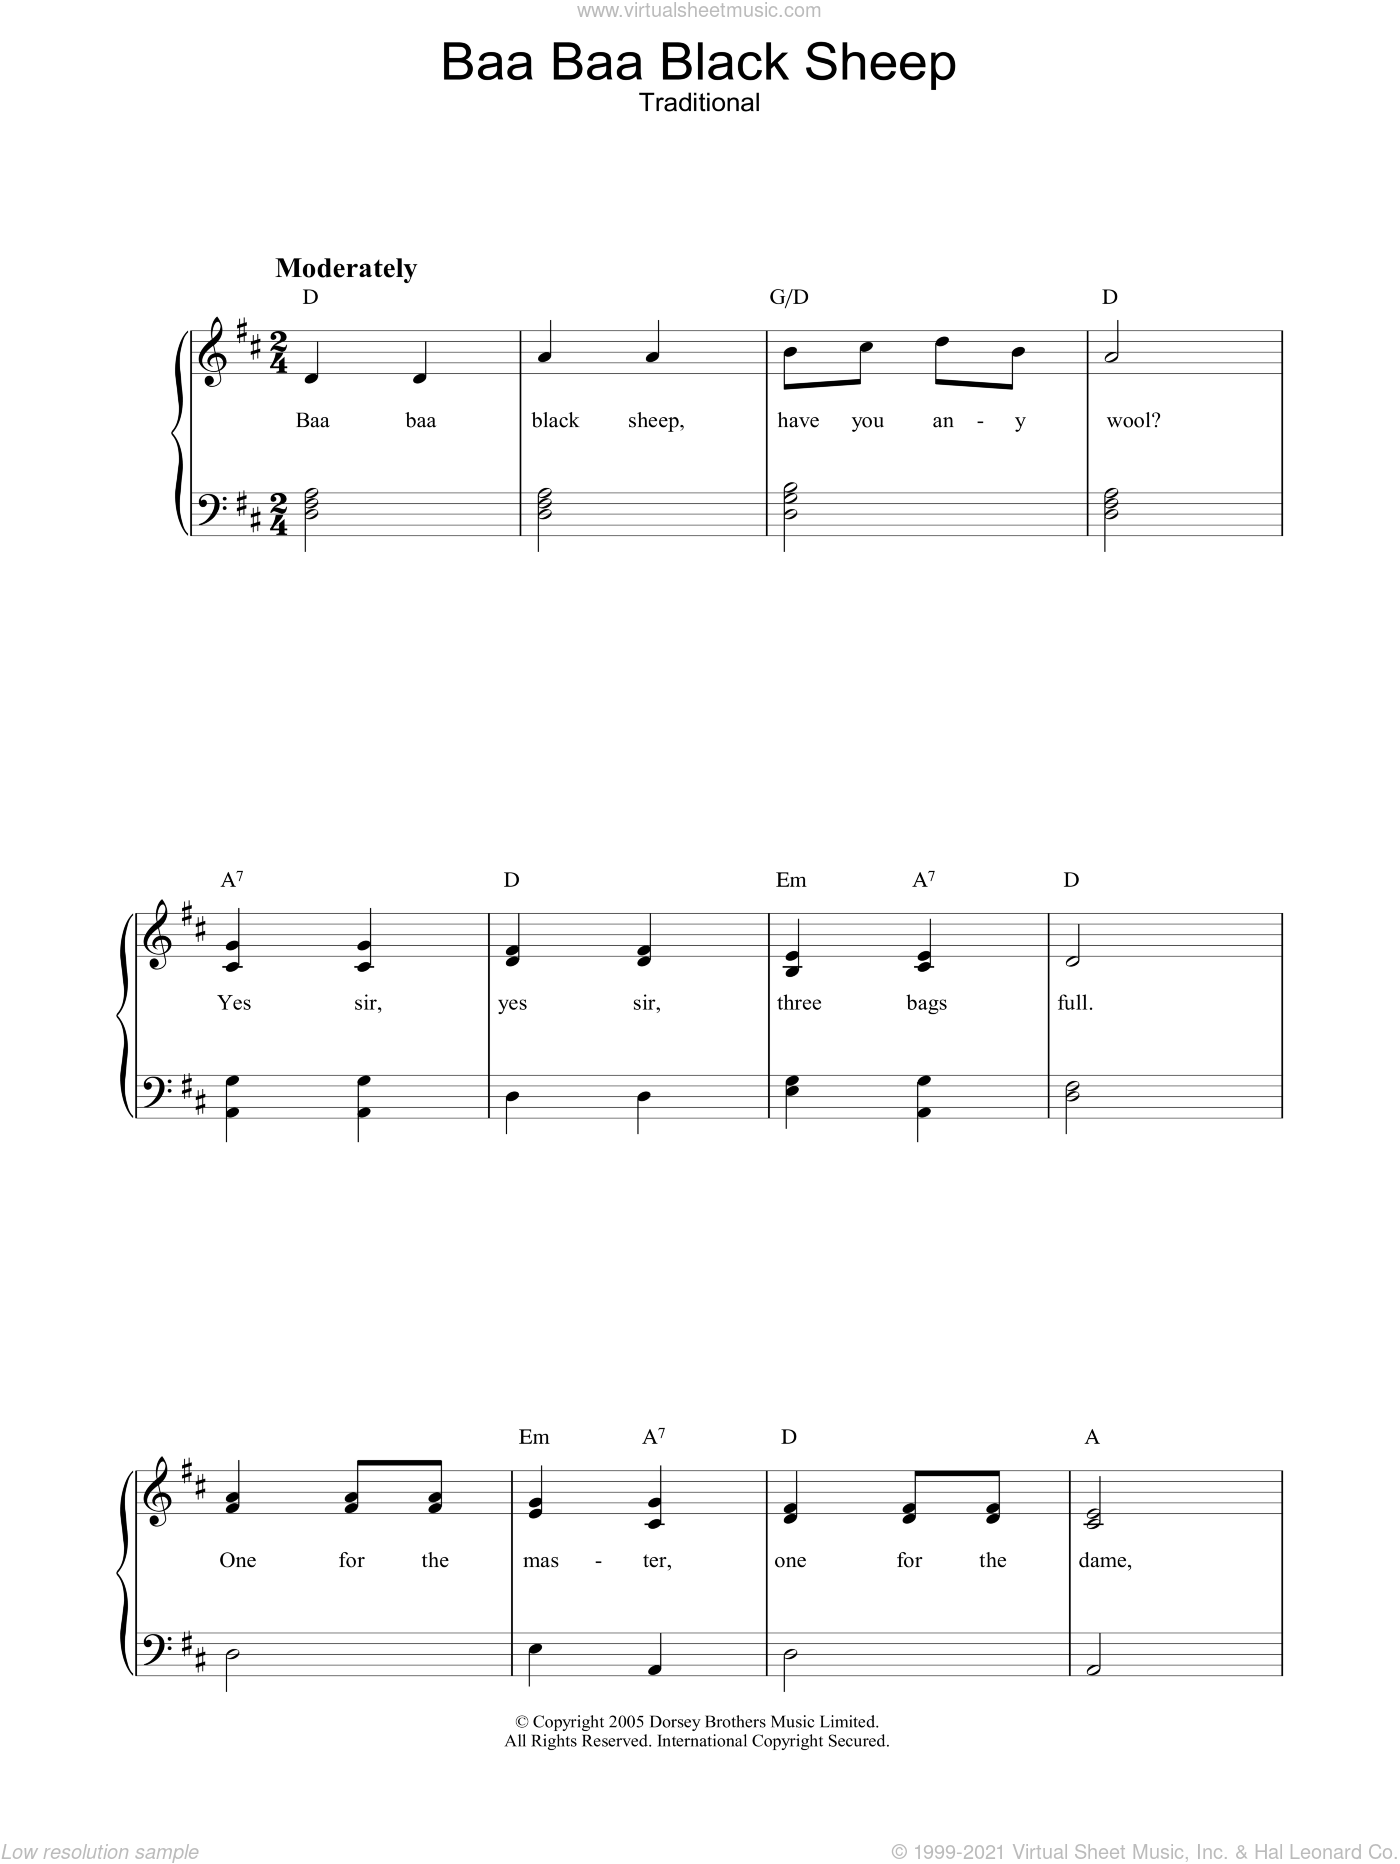 Baa Baa Black Sheep sheet music for voice, piano or guitar, intermediate. Score Image Preview.